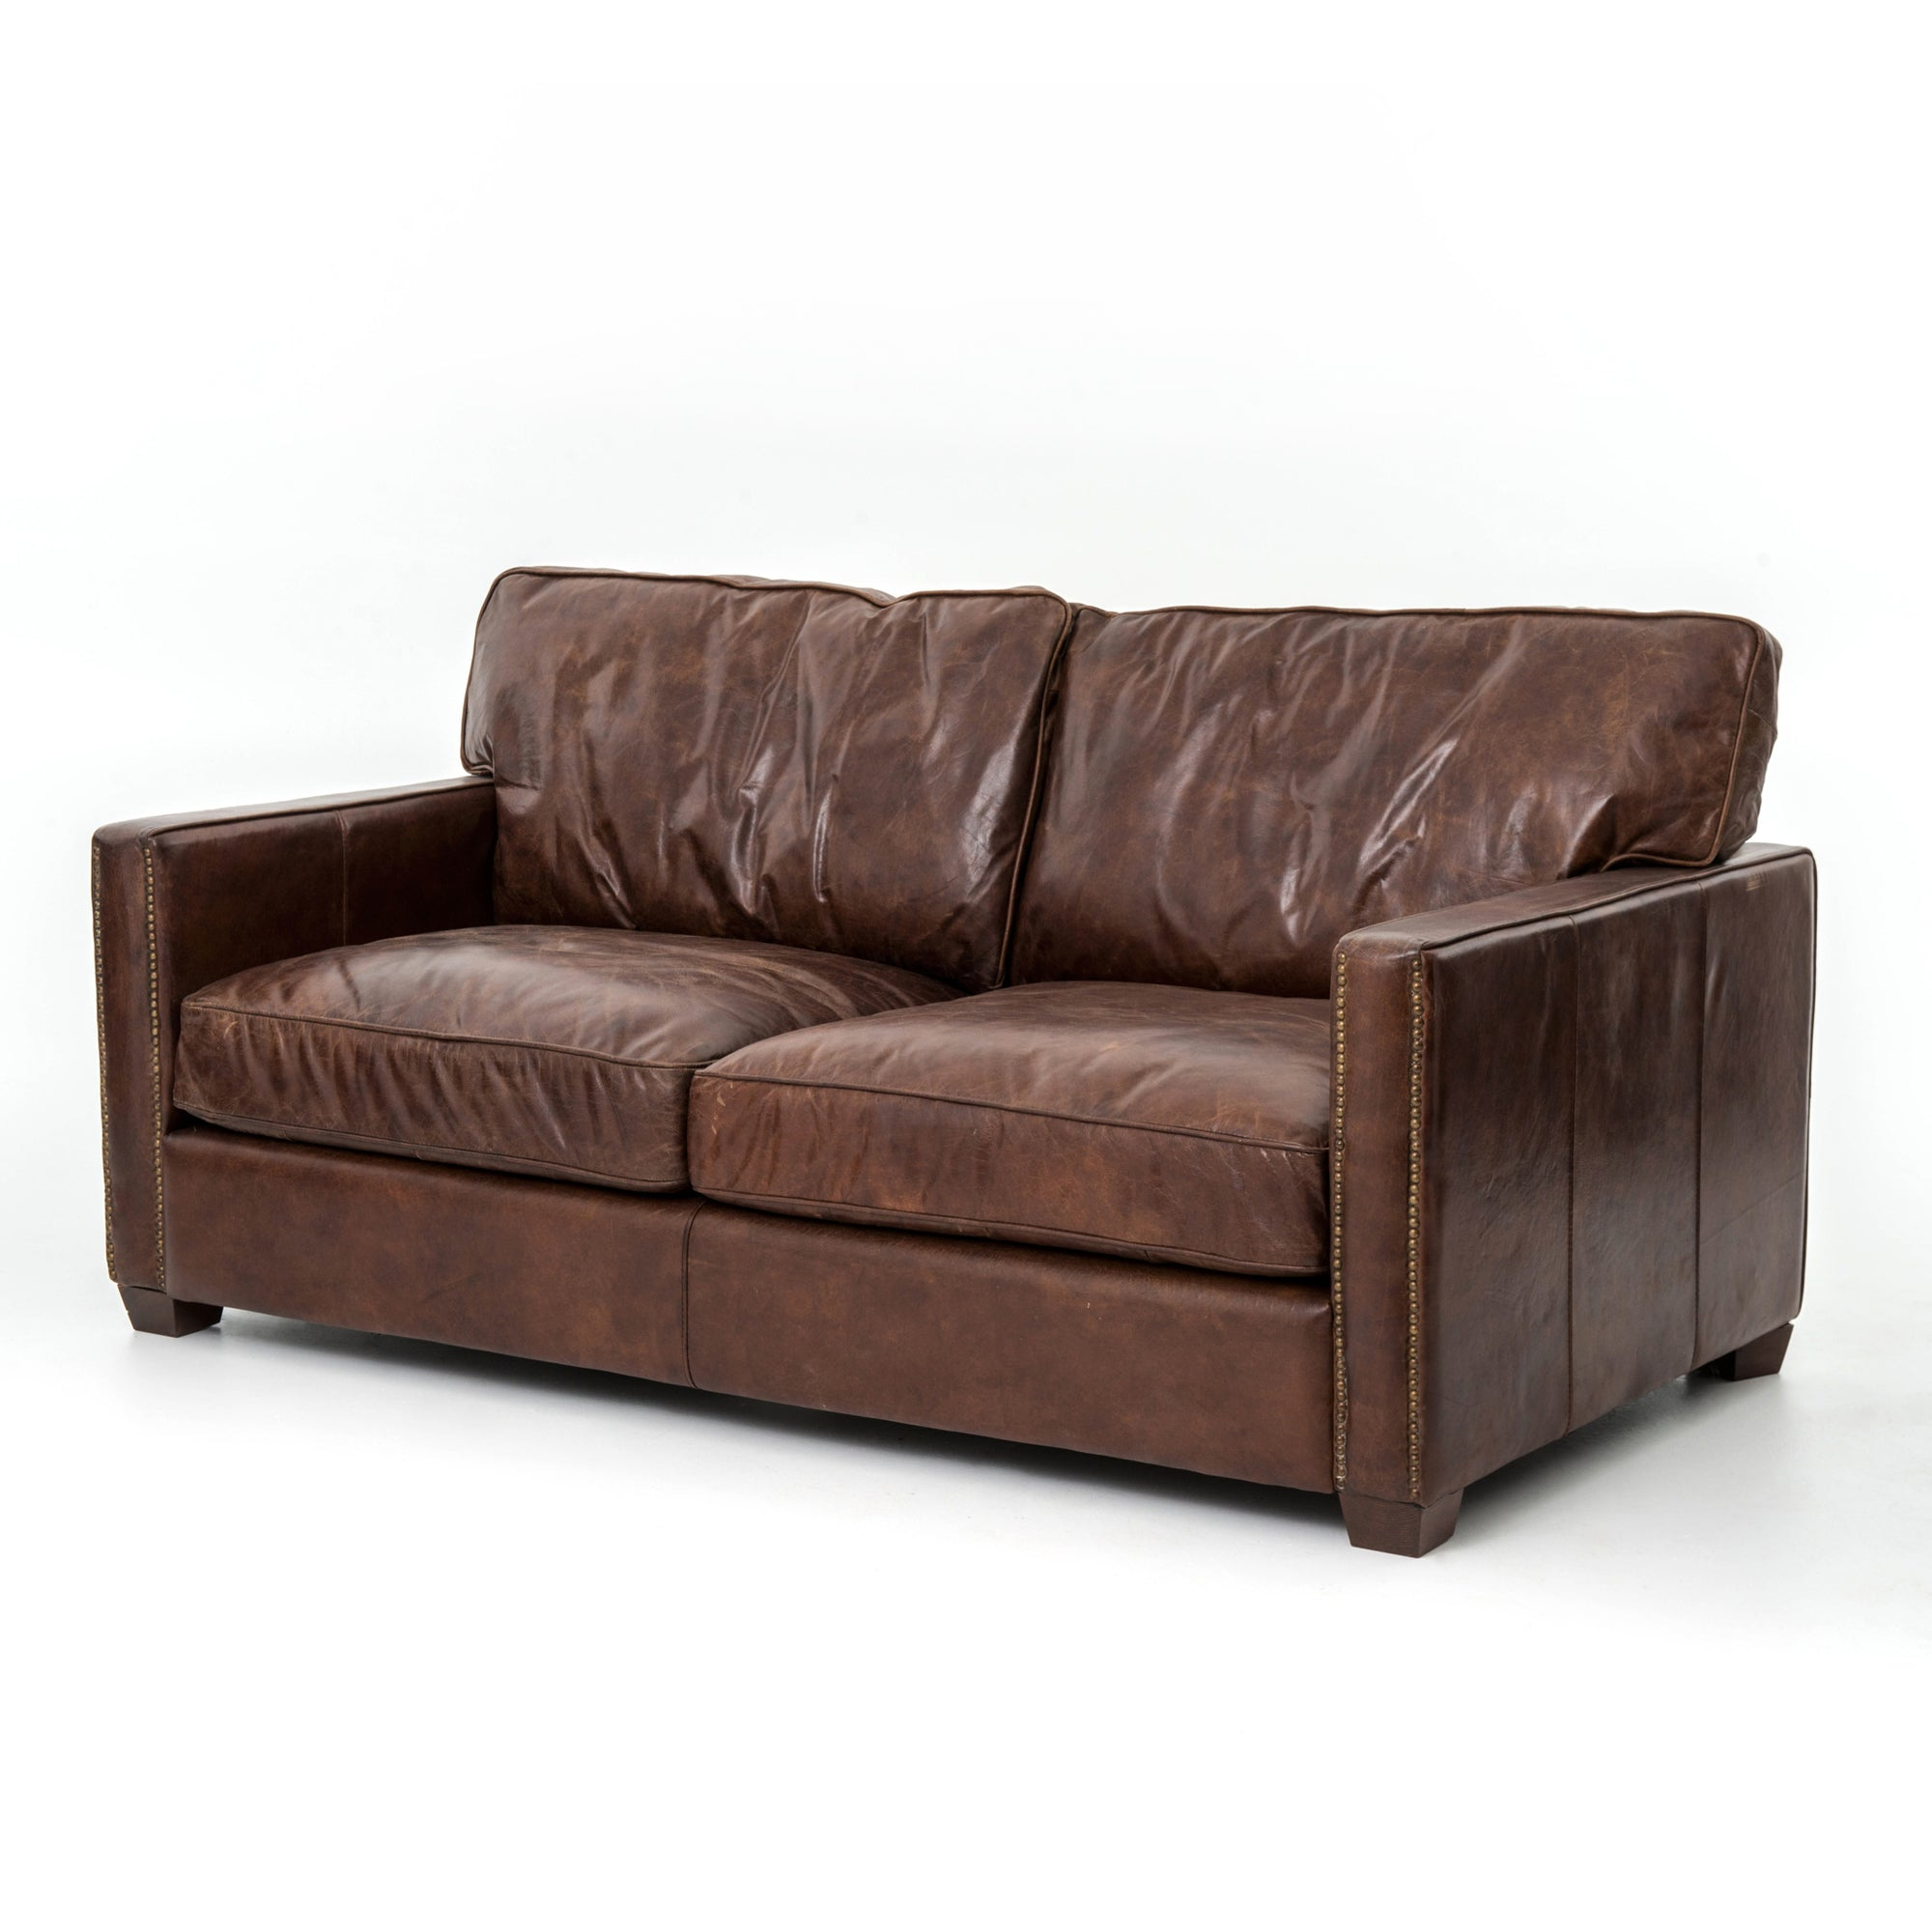 "Larkin Sofa - 72"" - Cigar"